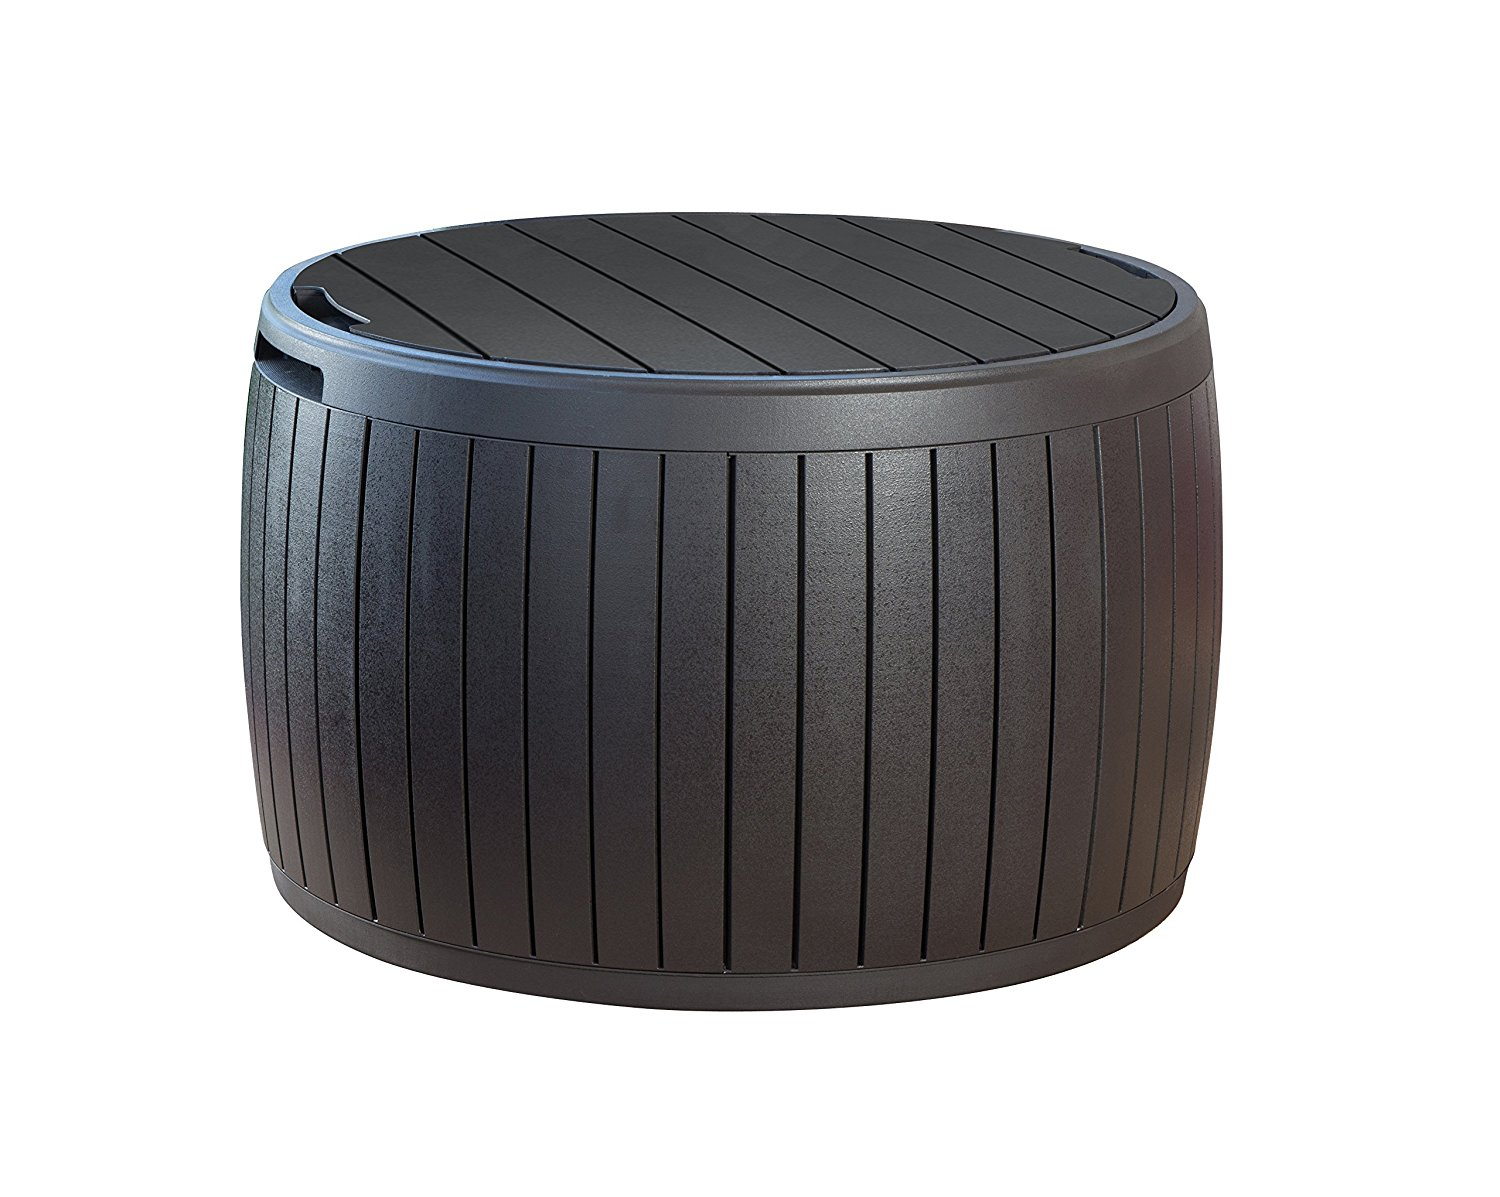 Keter Circa Outdoor Storage Deck Box